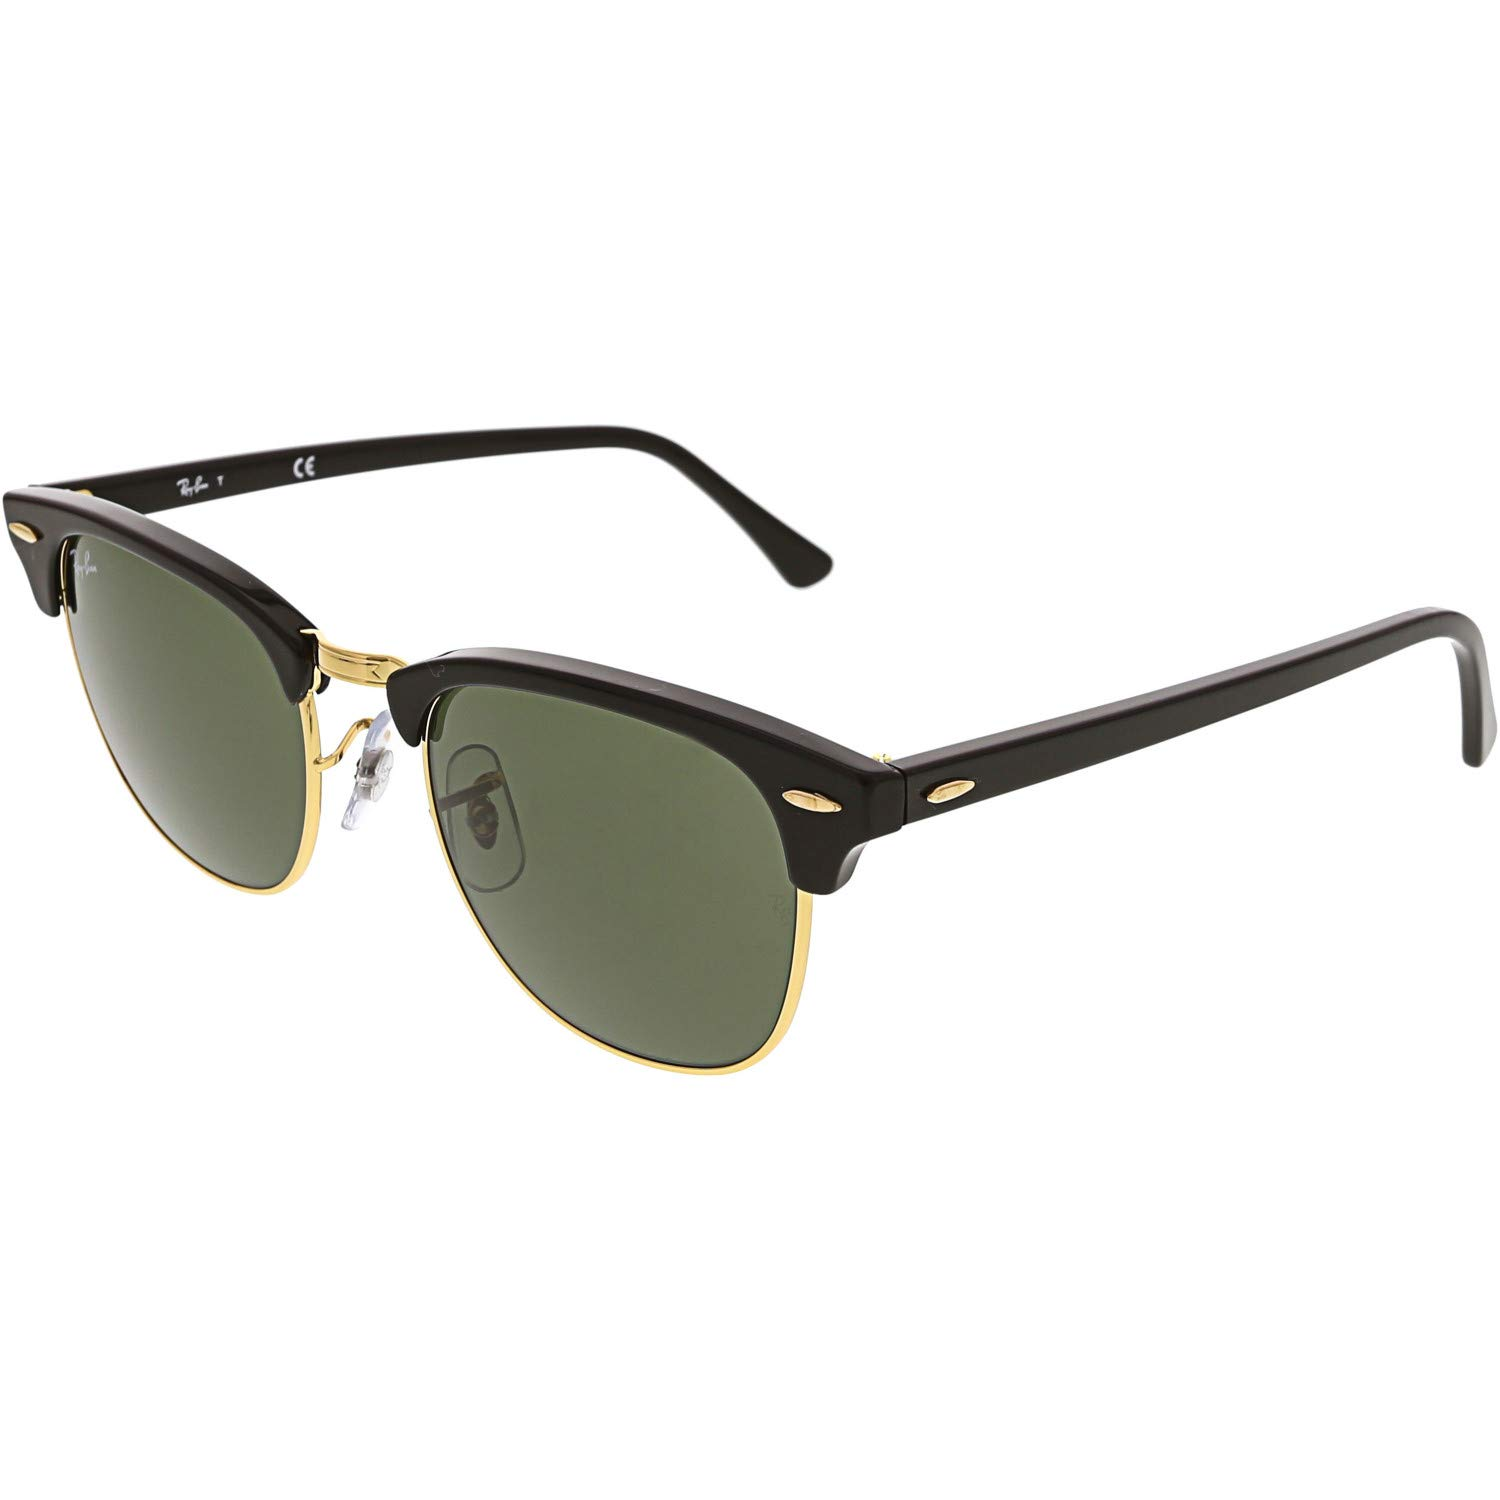 RAY-BAN RB3016 Clubmaster Square Sunglasses, Black On Gold/Green, 51 mm by RAY-BAN